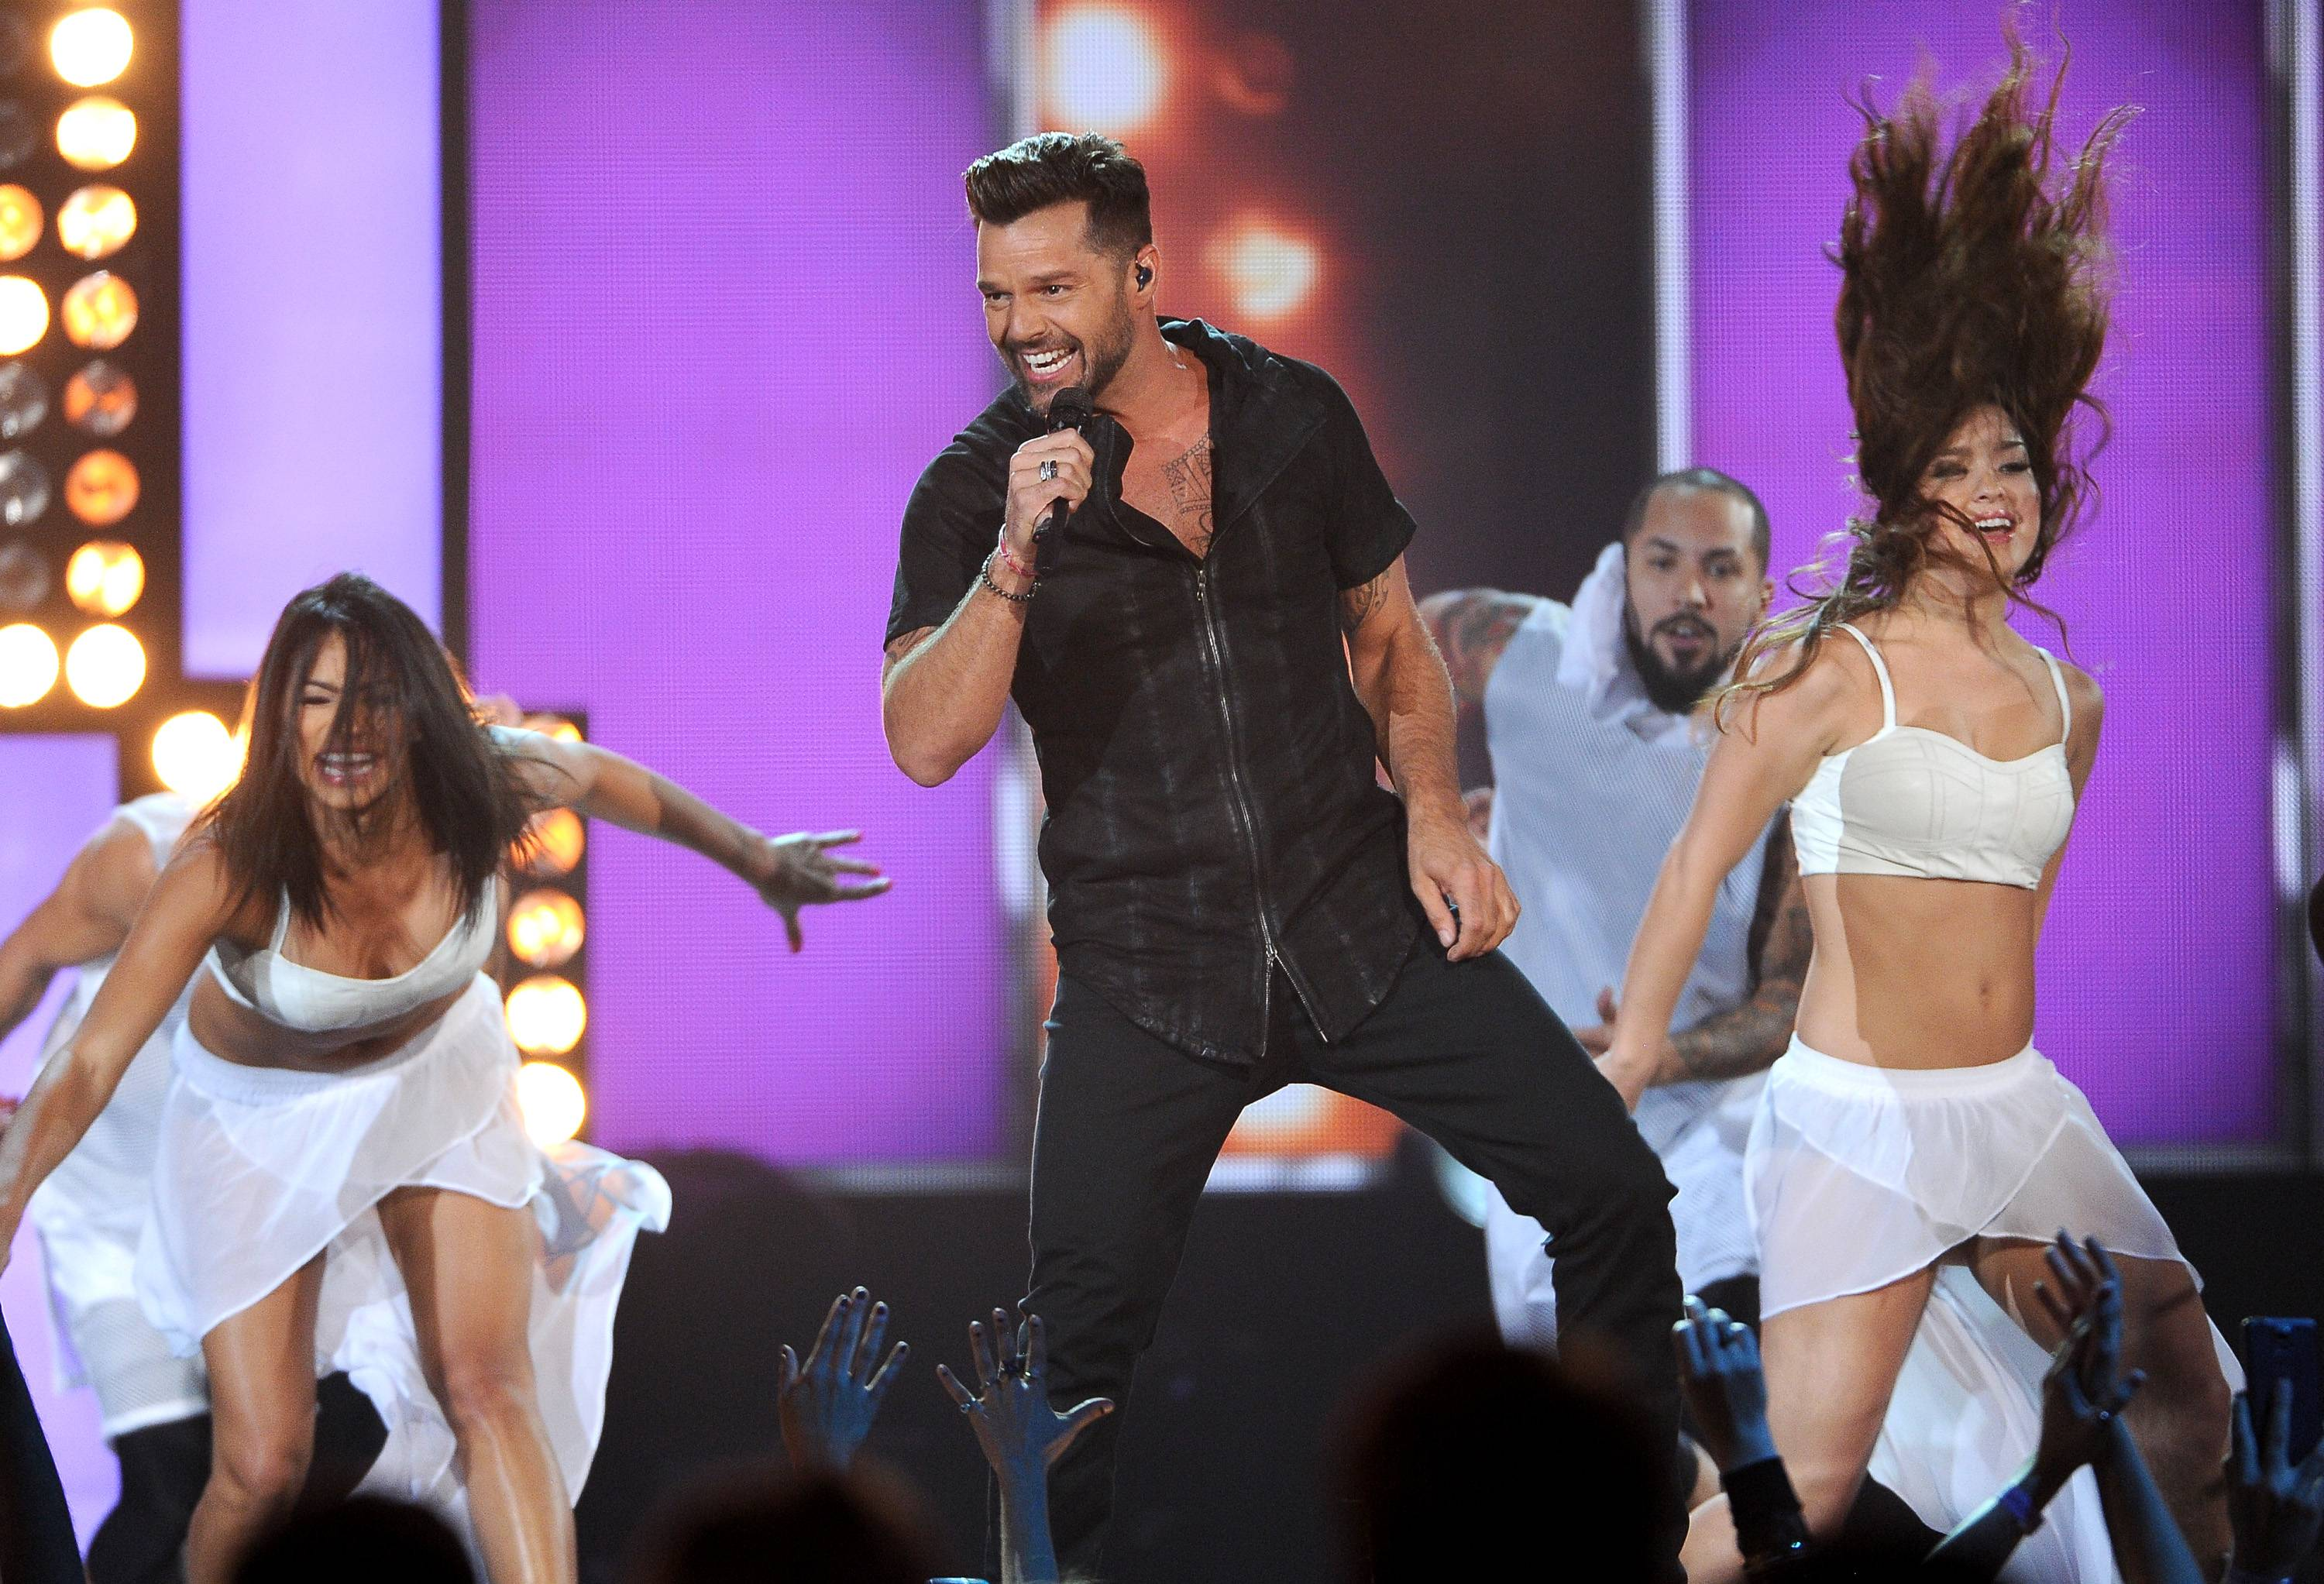 Ricky Martin performs on stage at the Billboard Music Awards at the MGM Grand Garden Arena on Sunday, May 18, 2014, in Las Vegas.